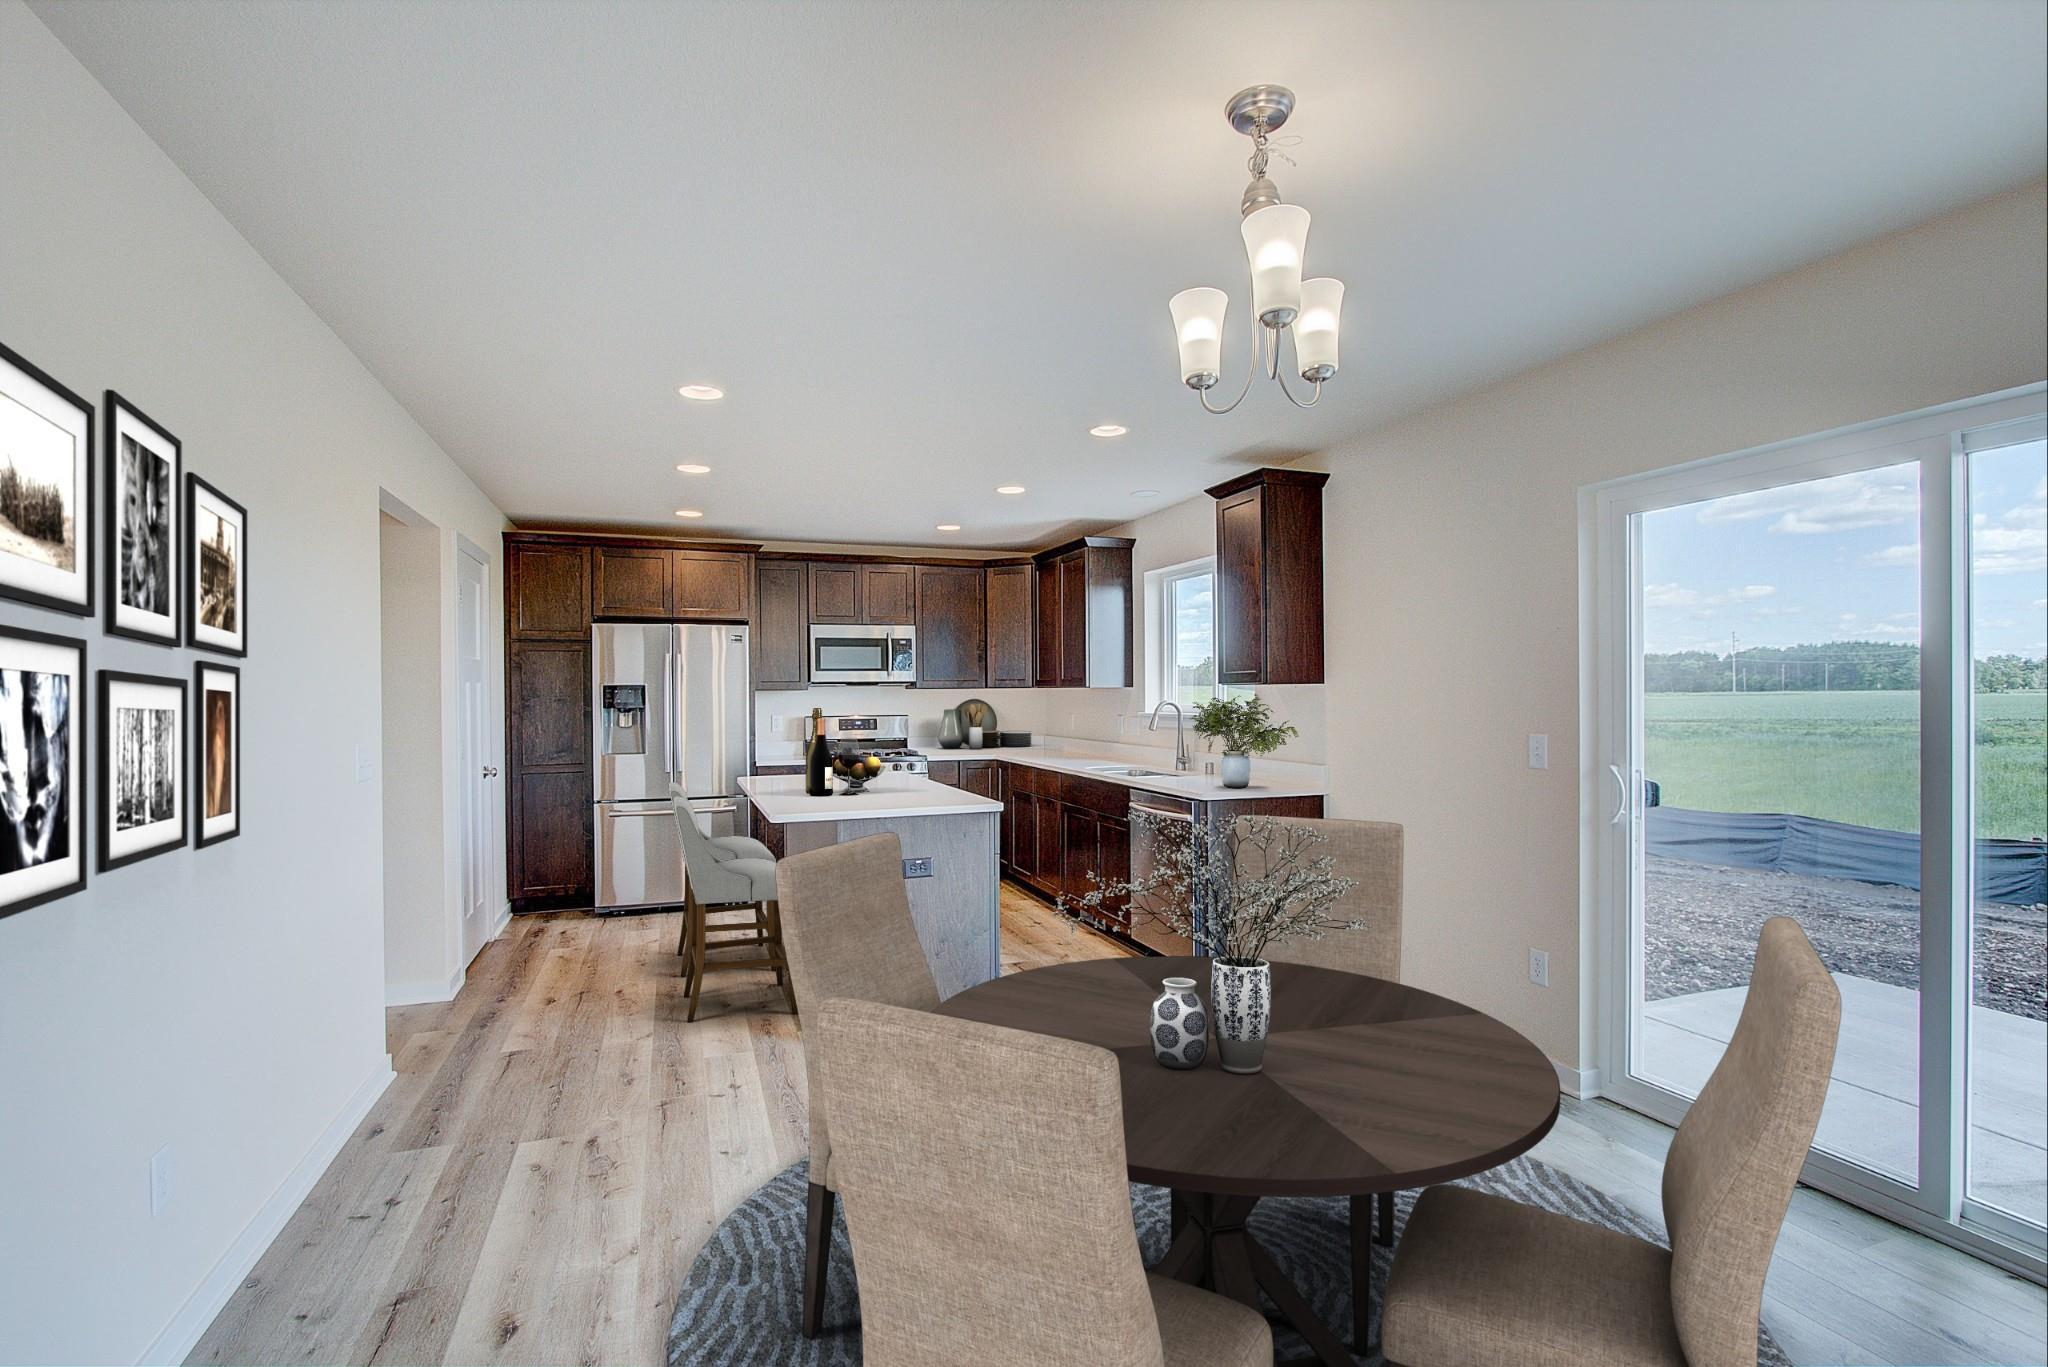 Kitchen featured in the Hudson By Harbor Homes in Washington-Fond du Lac, WI